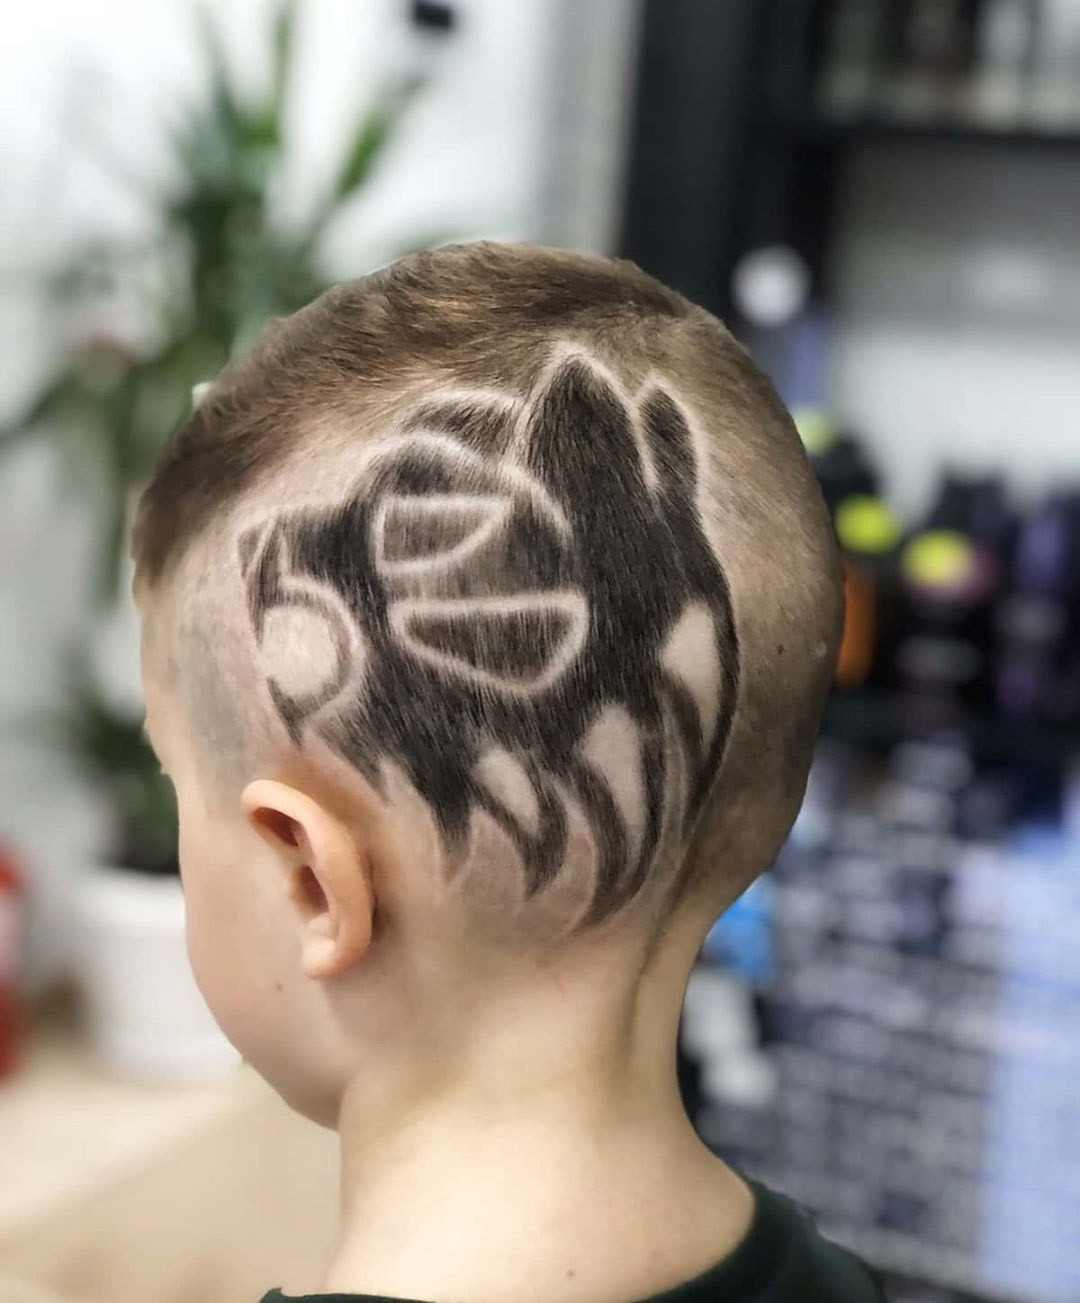 Hairstyle for Kids with Tiger Design